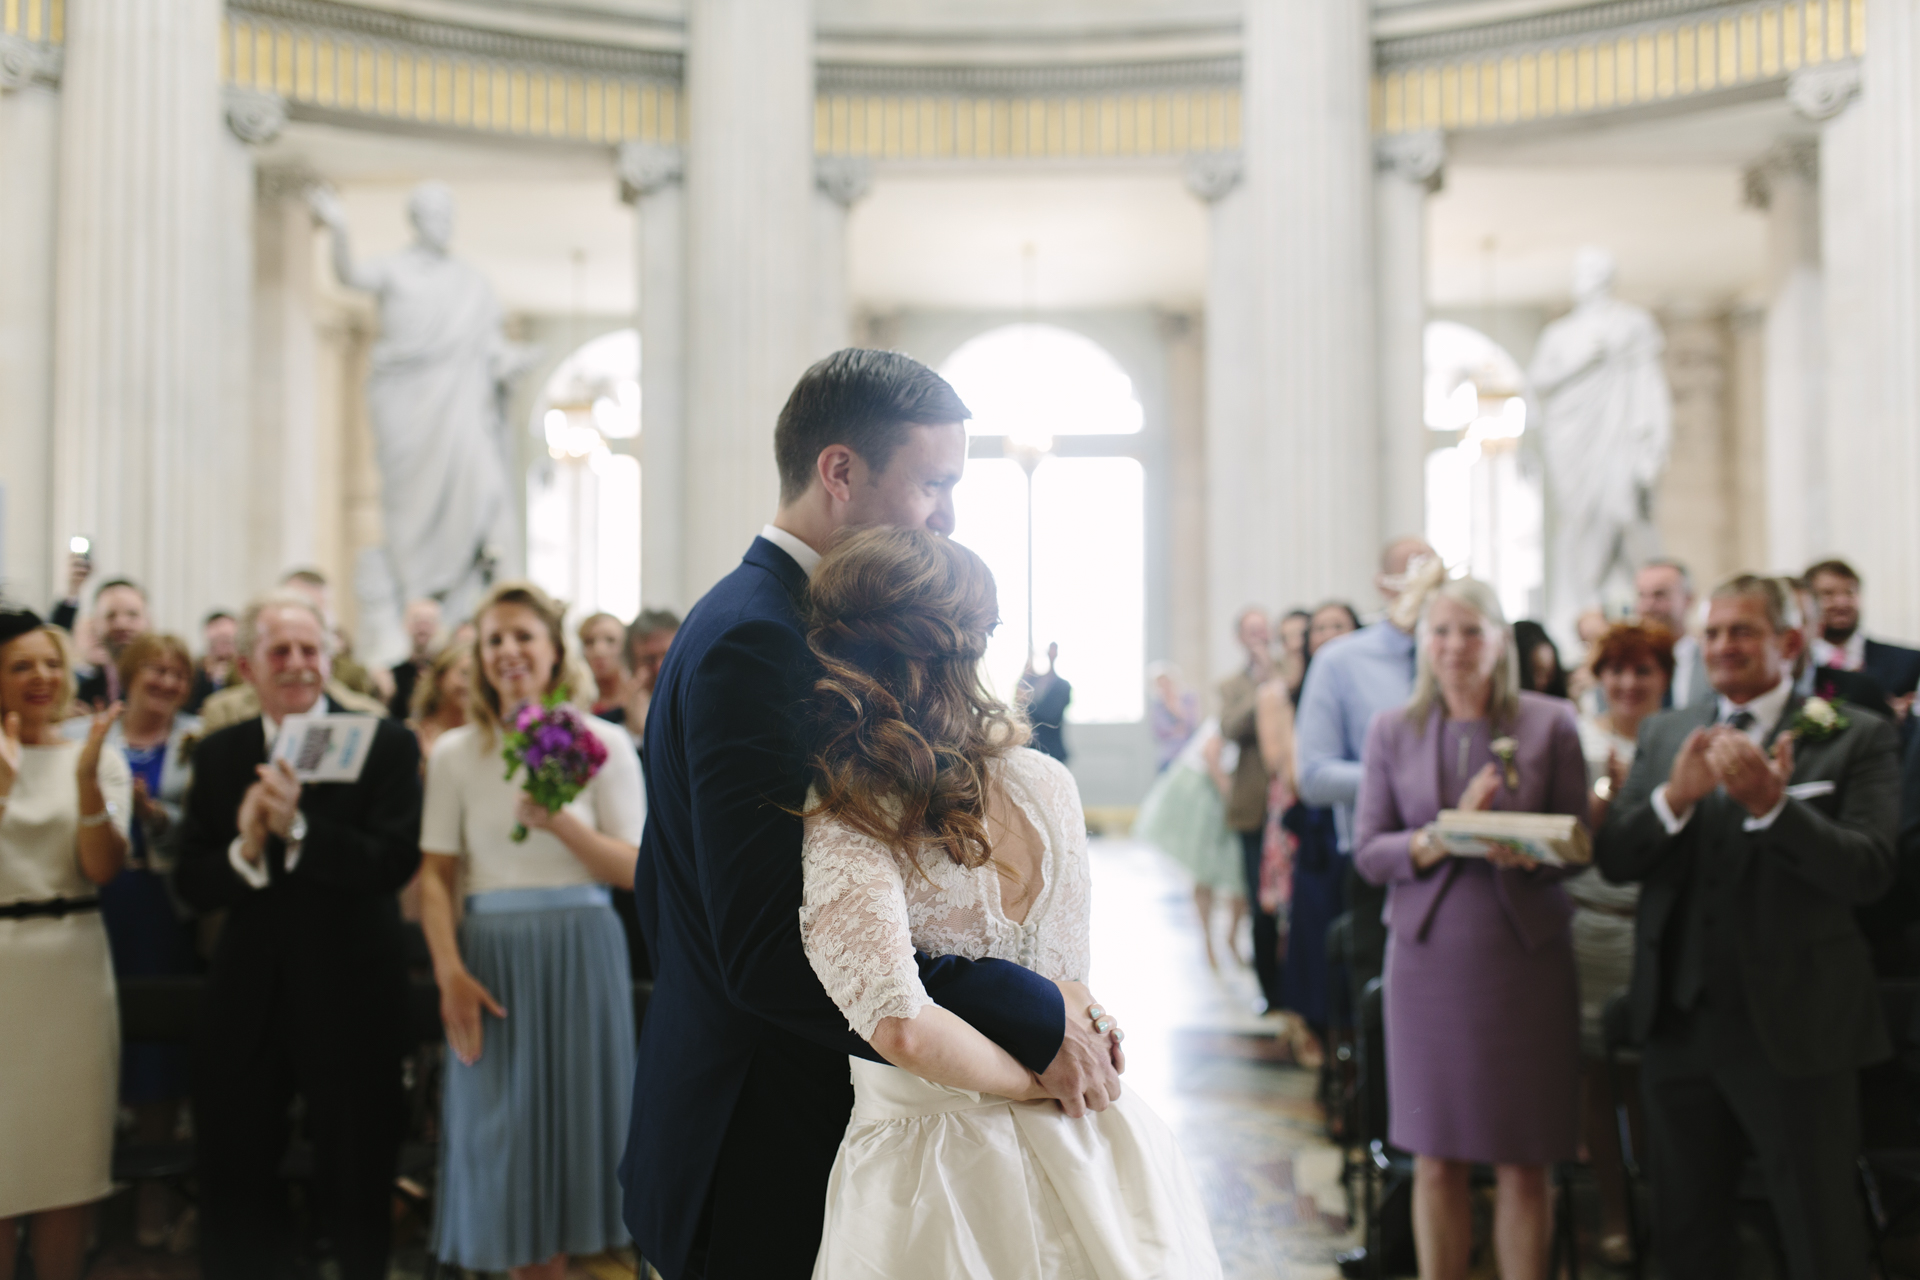 Dublin Wedding Photographer Graciela Vilagudin 00167.jpg